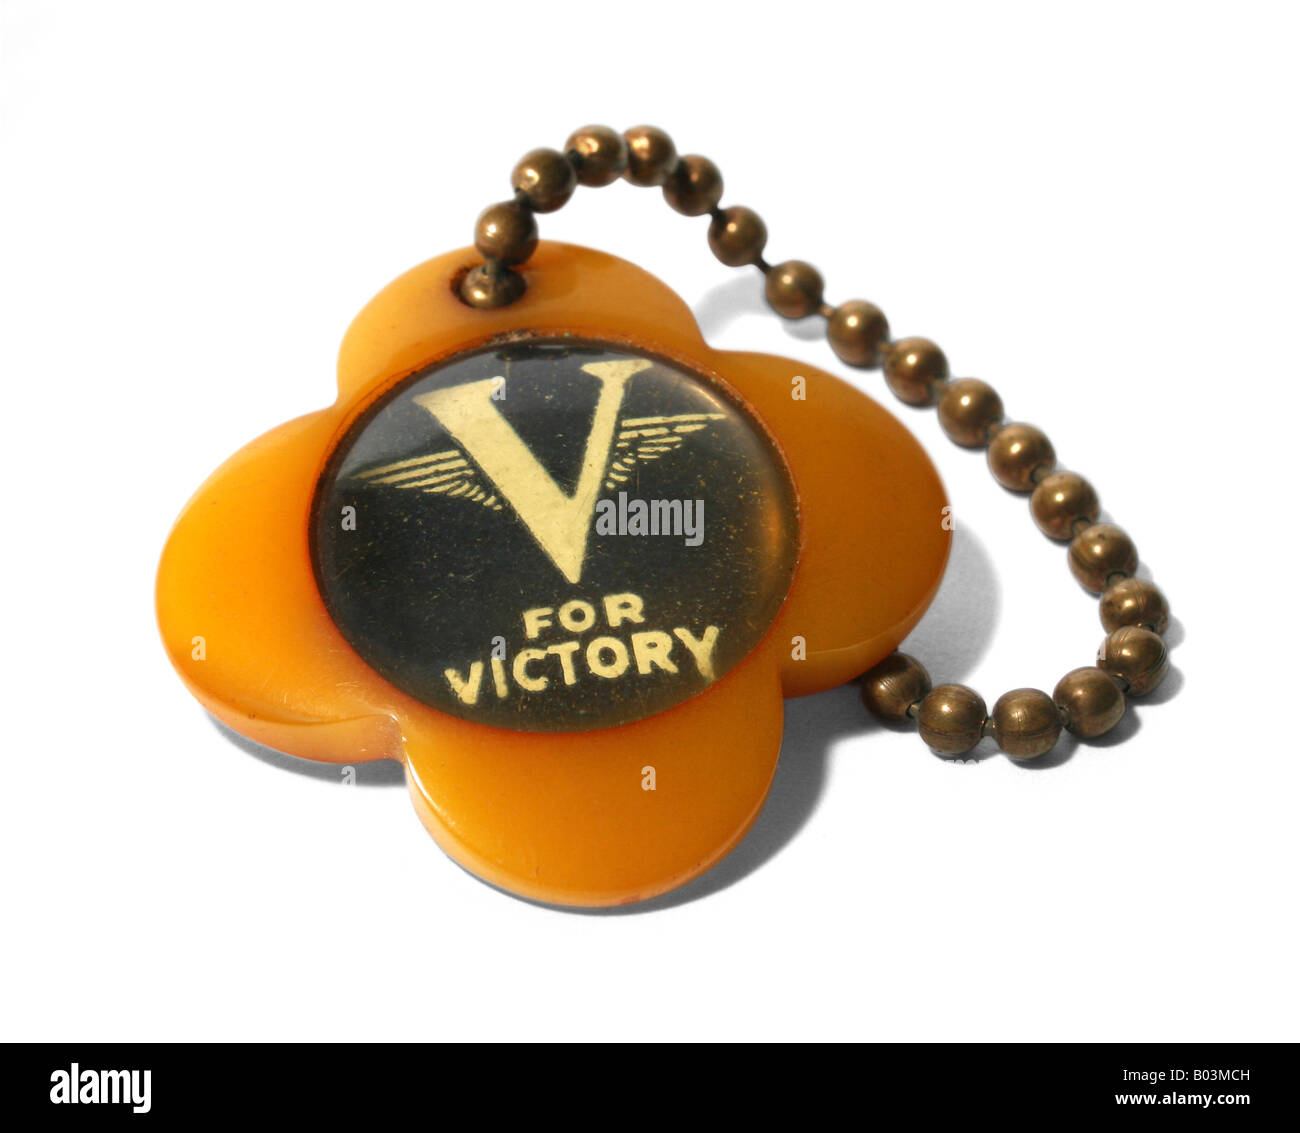 World War II, circa 1940-1945, bakelite 'V for Victory' keychain. - Stock Image